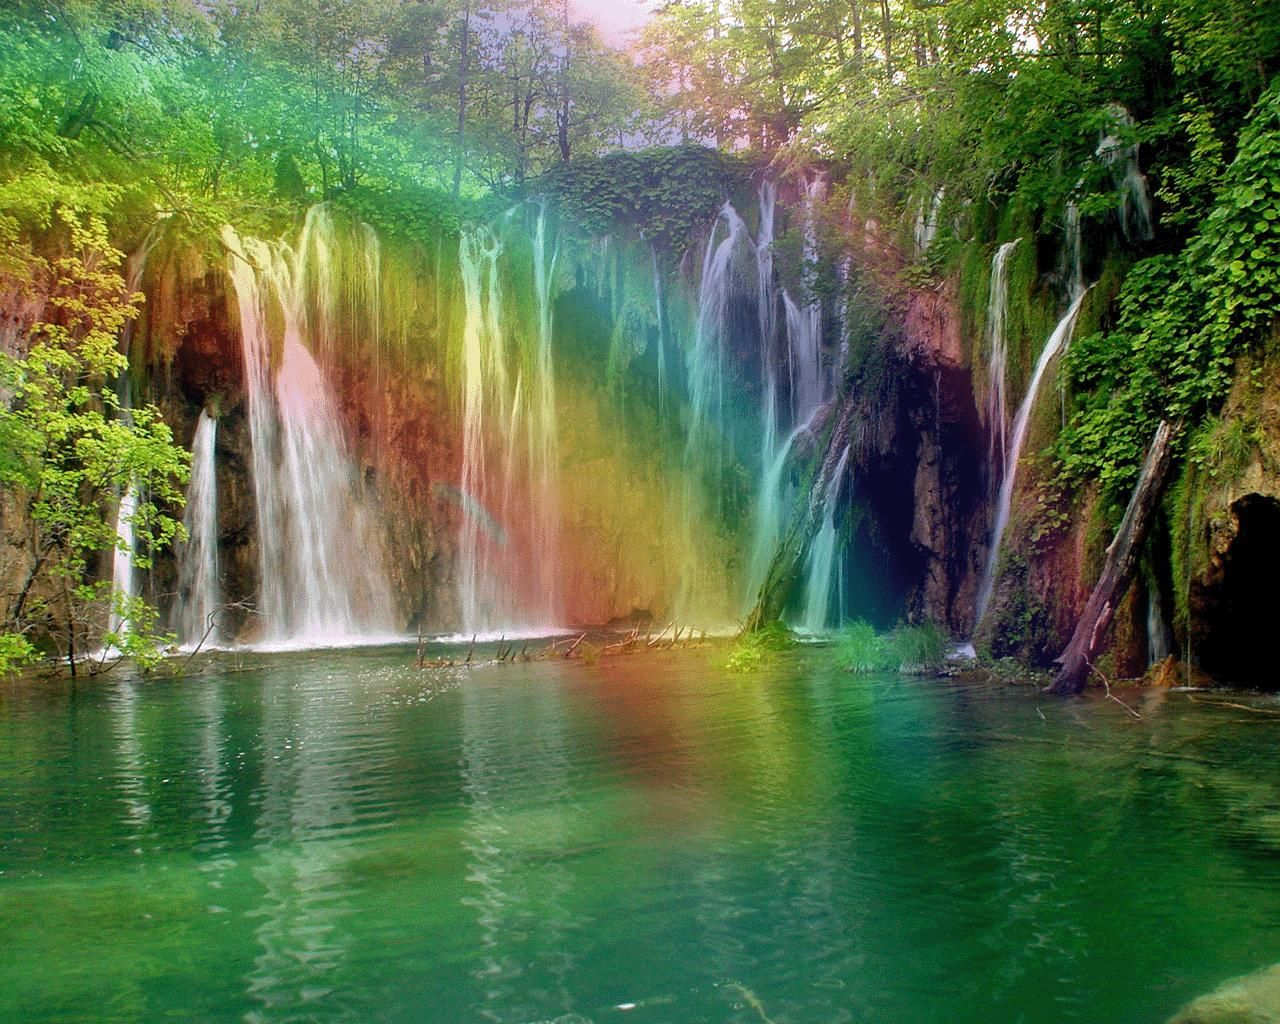 Waterfall And Rainbow Wallpaper Images For Desktop Wallpaper In 2020 Rainbow Waterfall Beautiful Nature Beautiful Rainbow